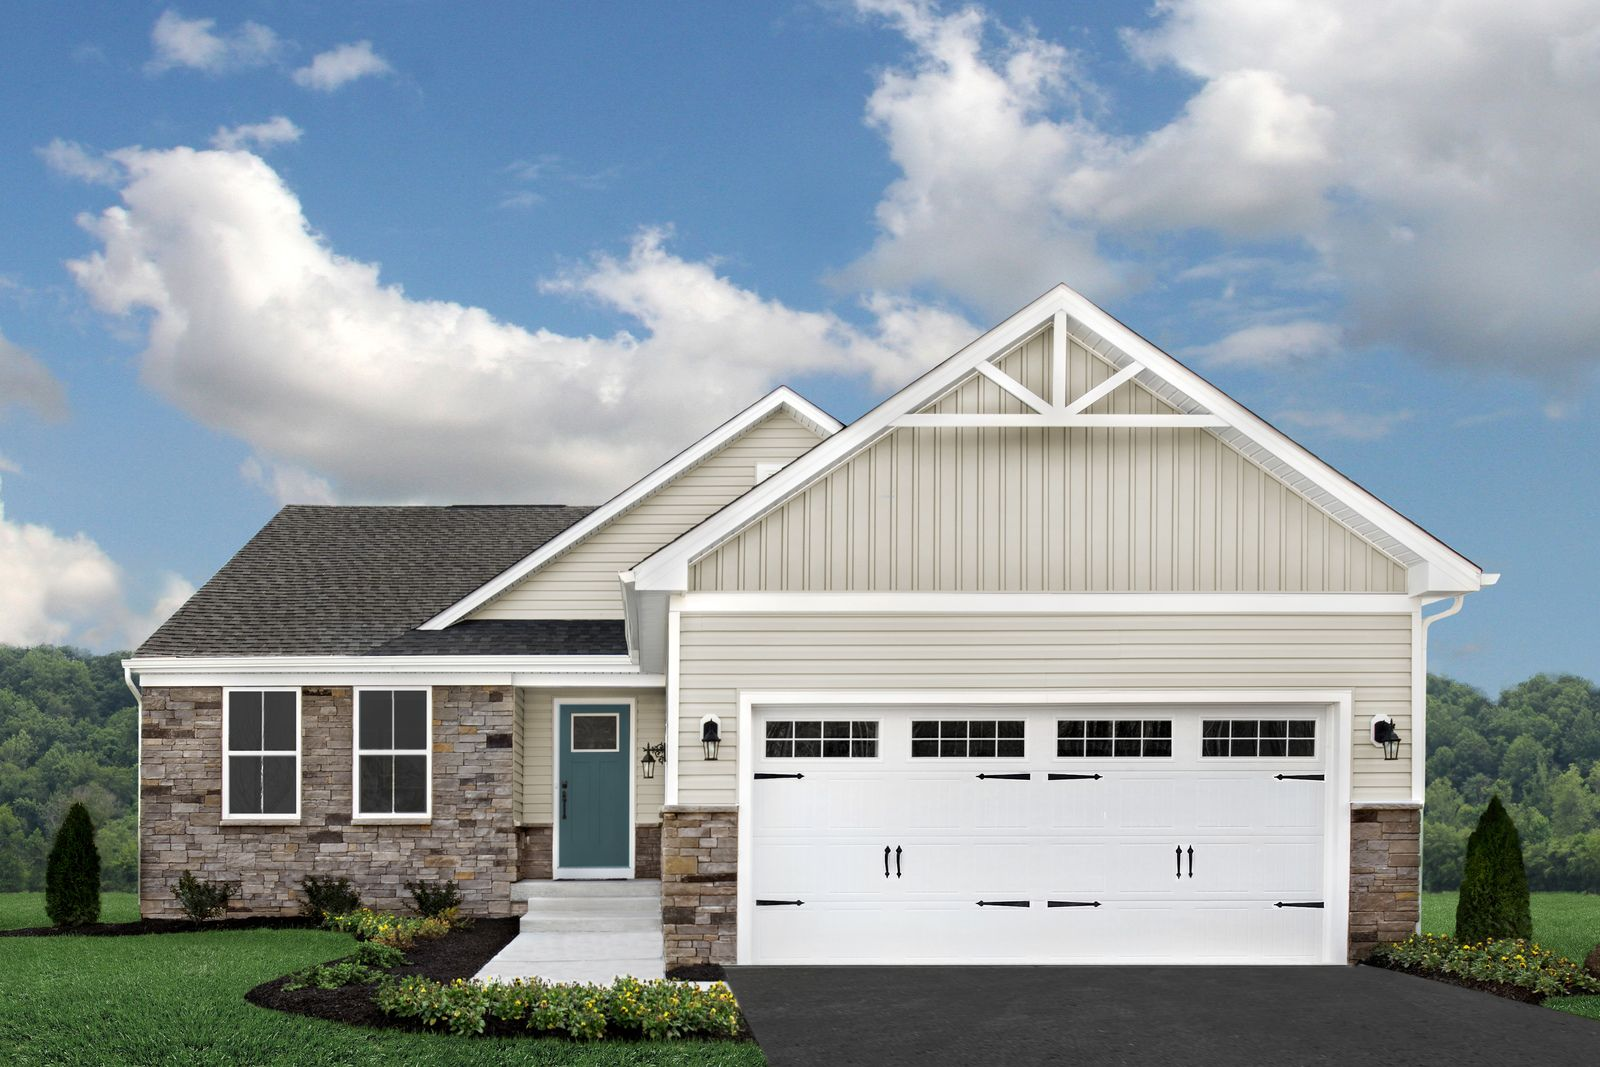 Easy One Level Living is Here!:The lowest priced new ranch home community in Washington County with lawn care and snow removal included, near I-79 & shopping.Click here to schedule your appointment.